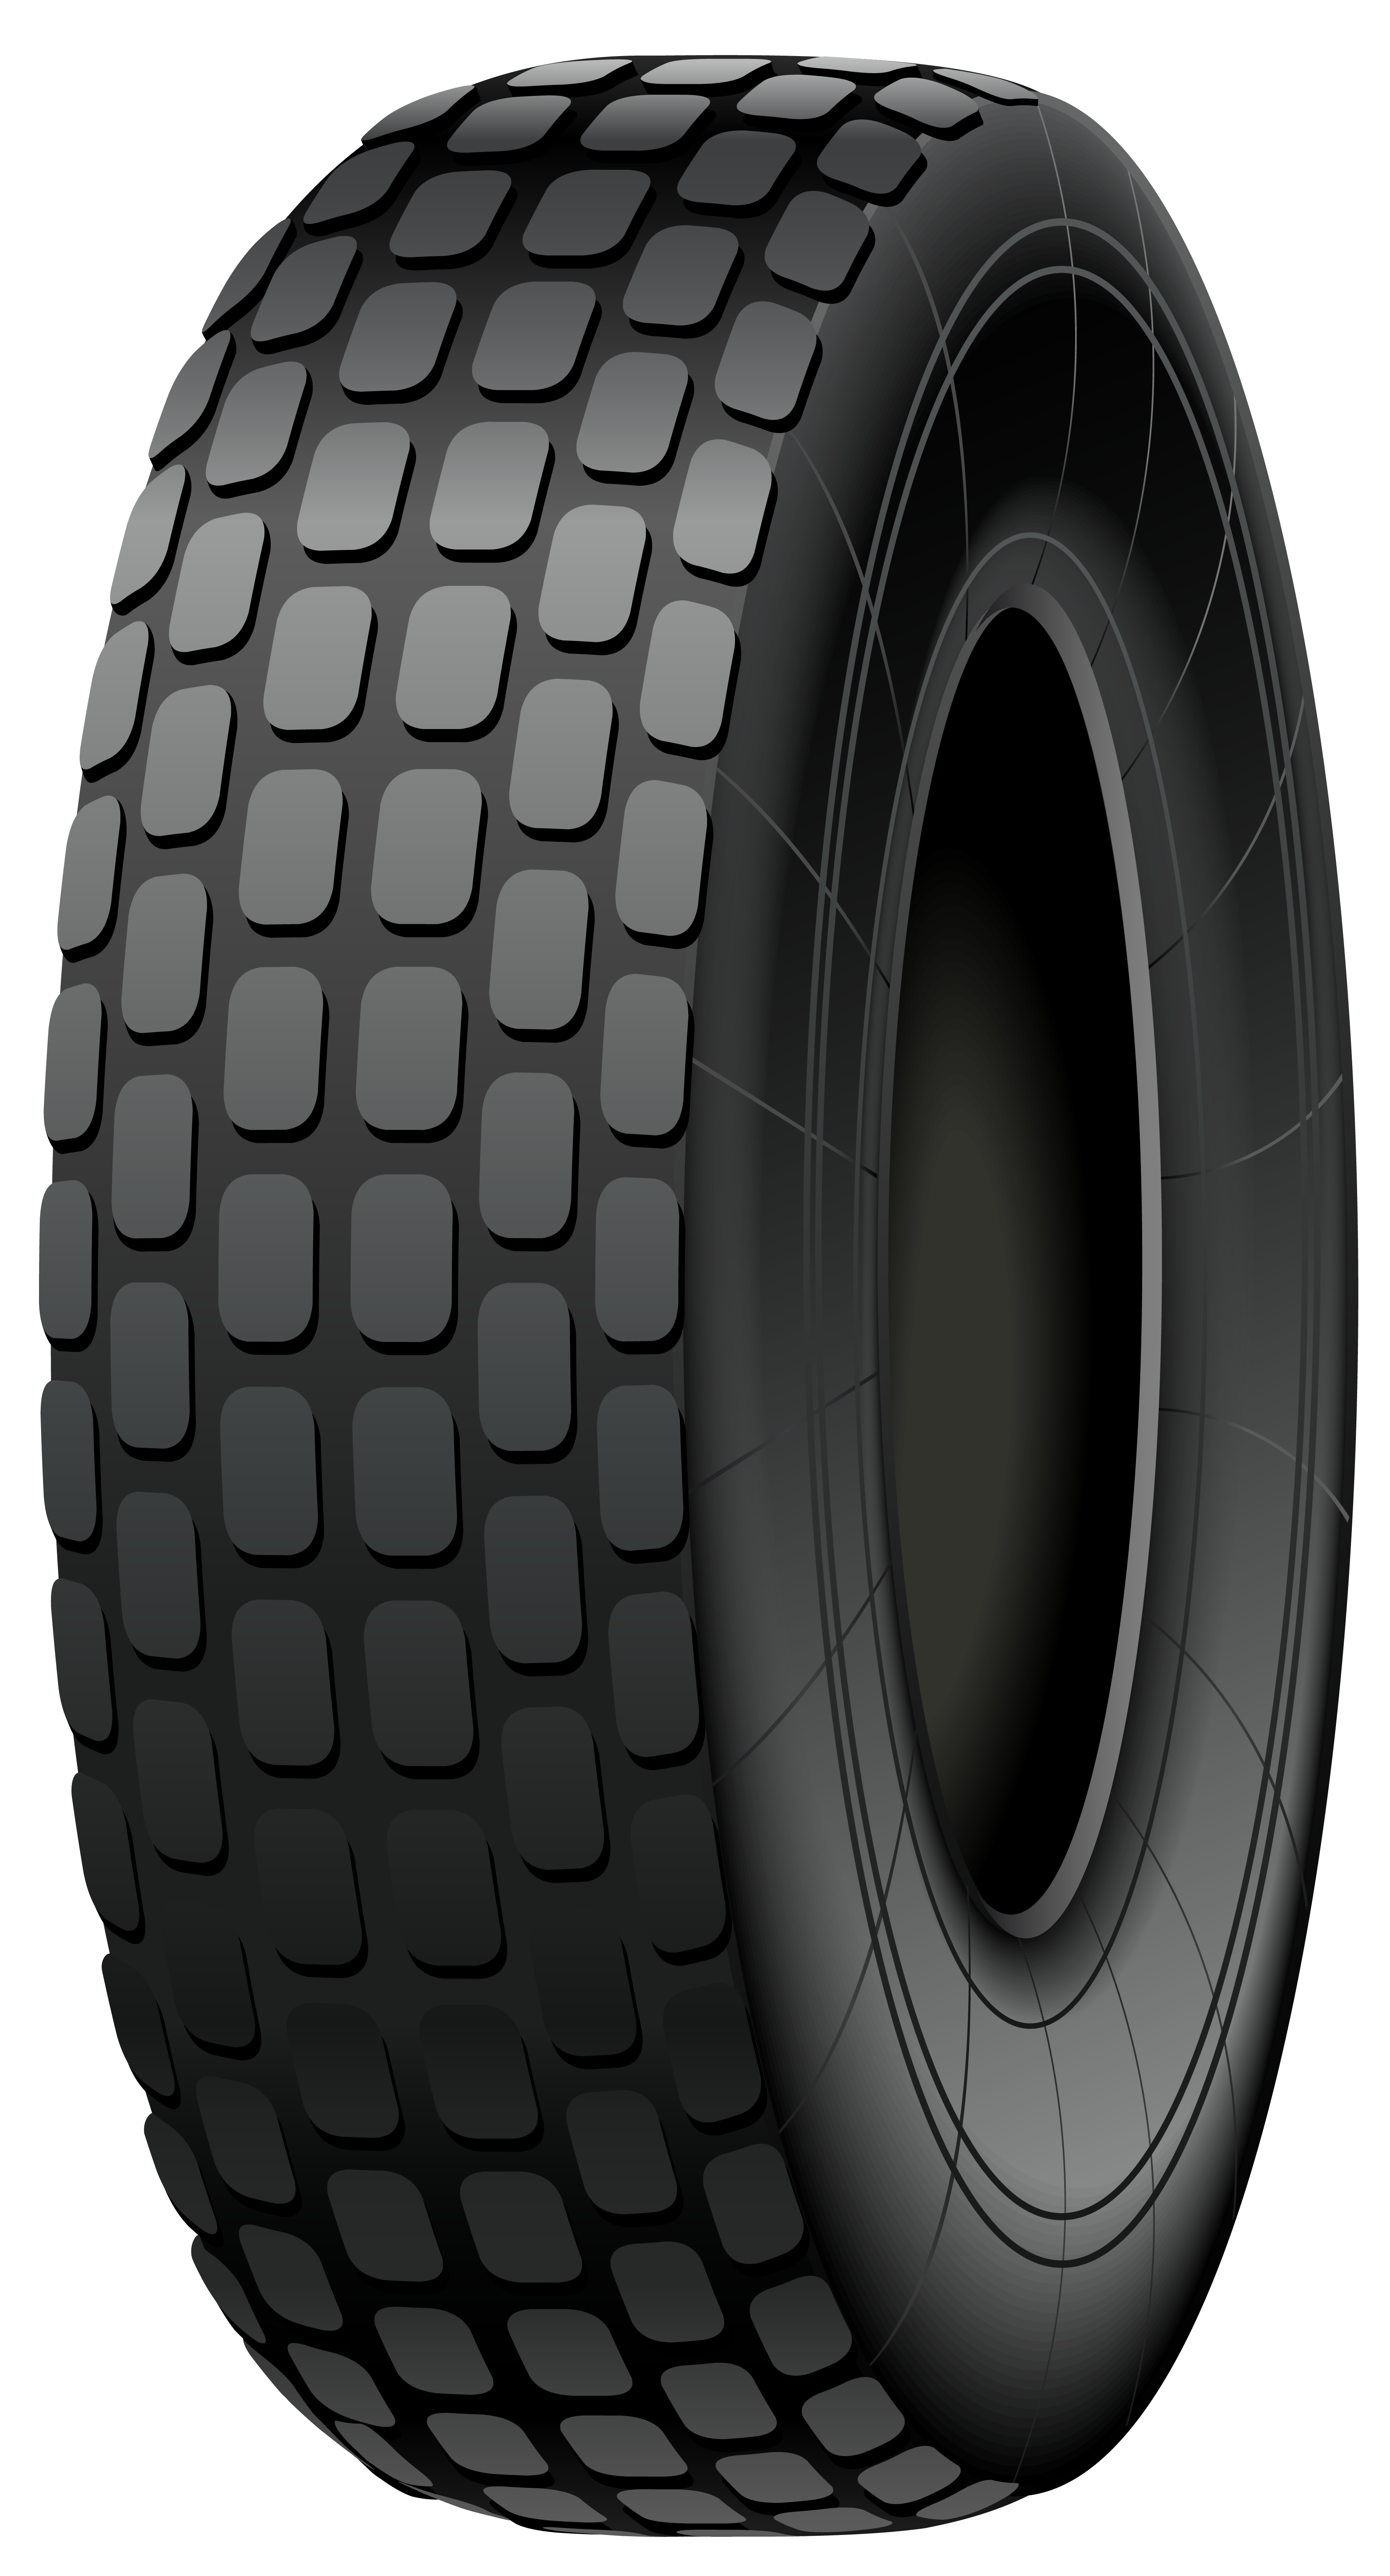 Tire Free PNG Images Tyre, Truck Tyre, Car Tire Free Clipart.